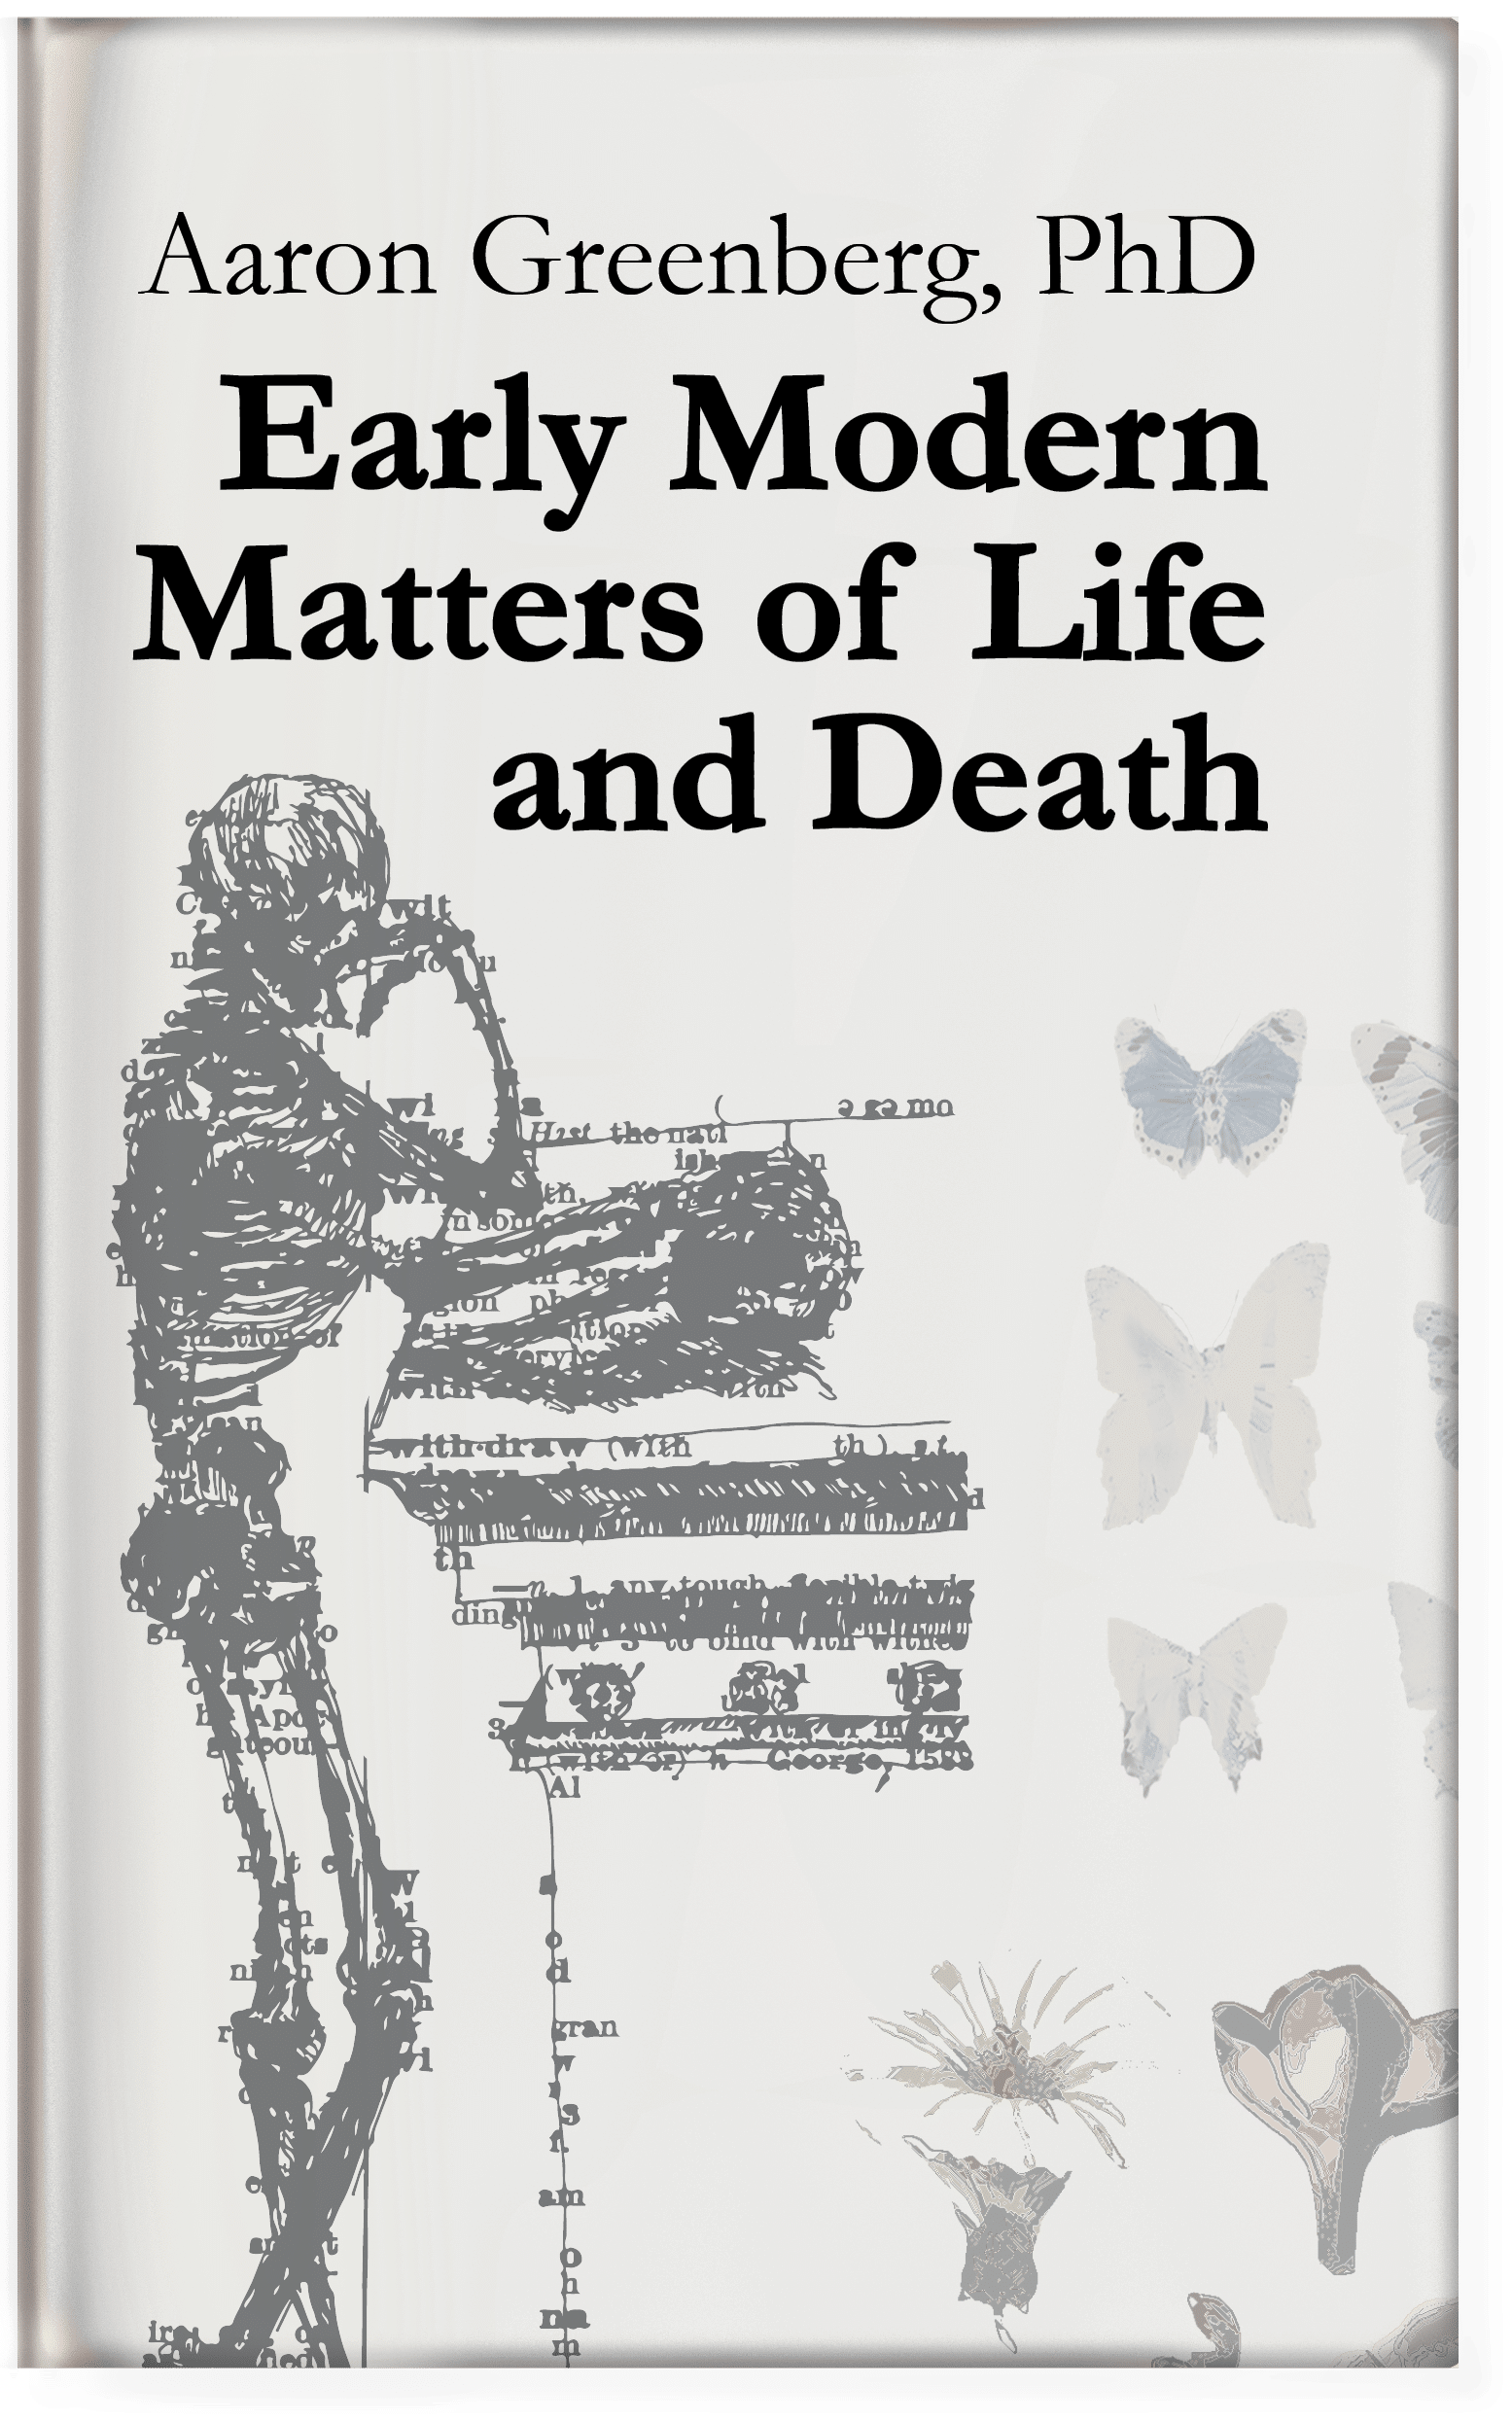 Early Modern Matters of Life and Death (Front Cover) Aaron Greenberg, PhD